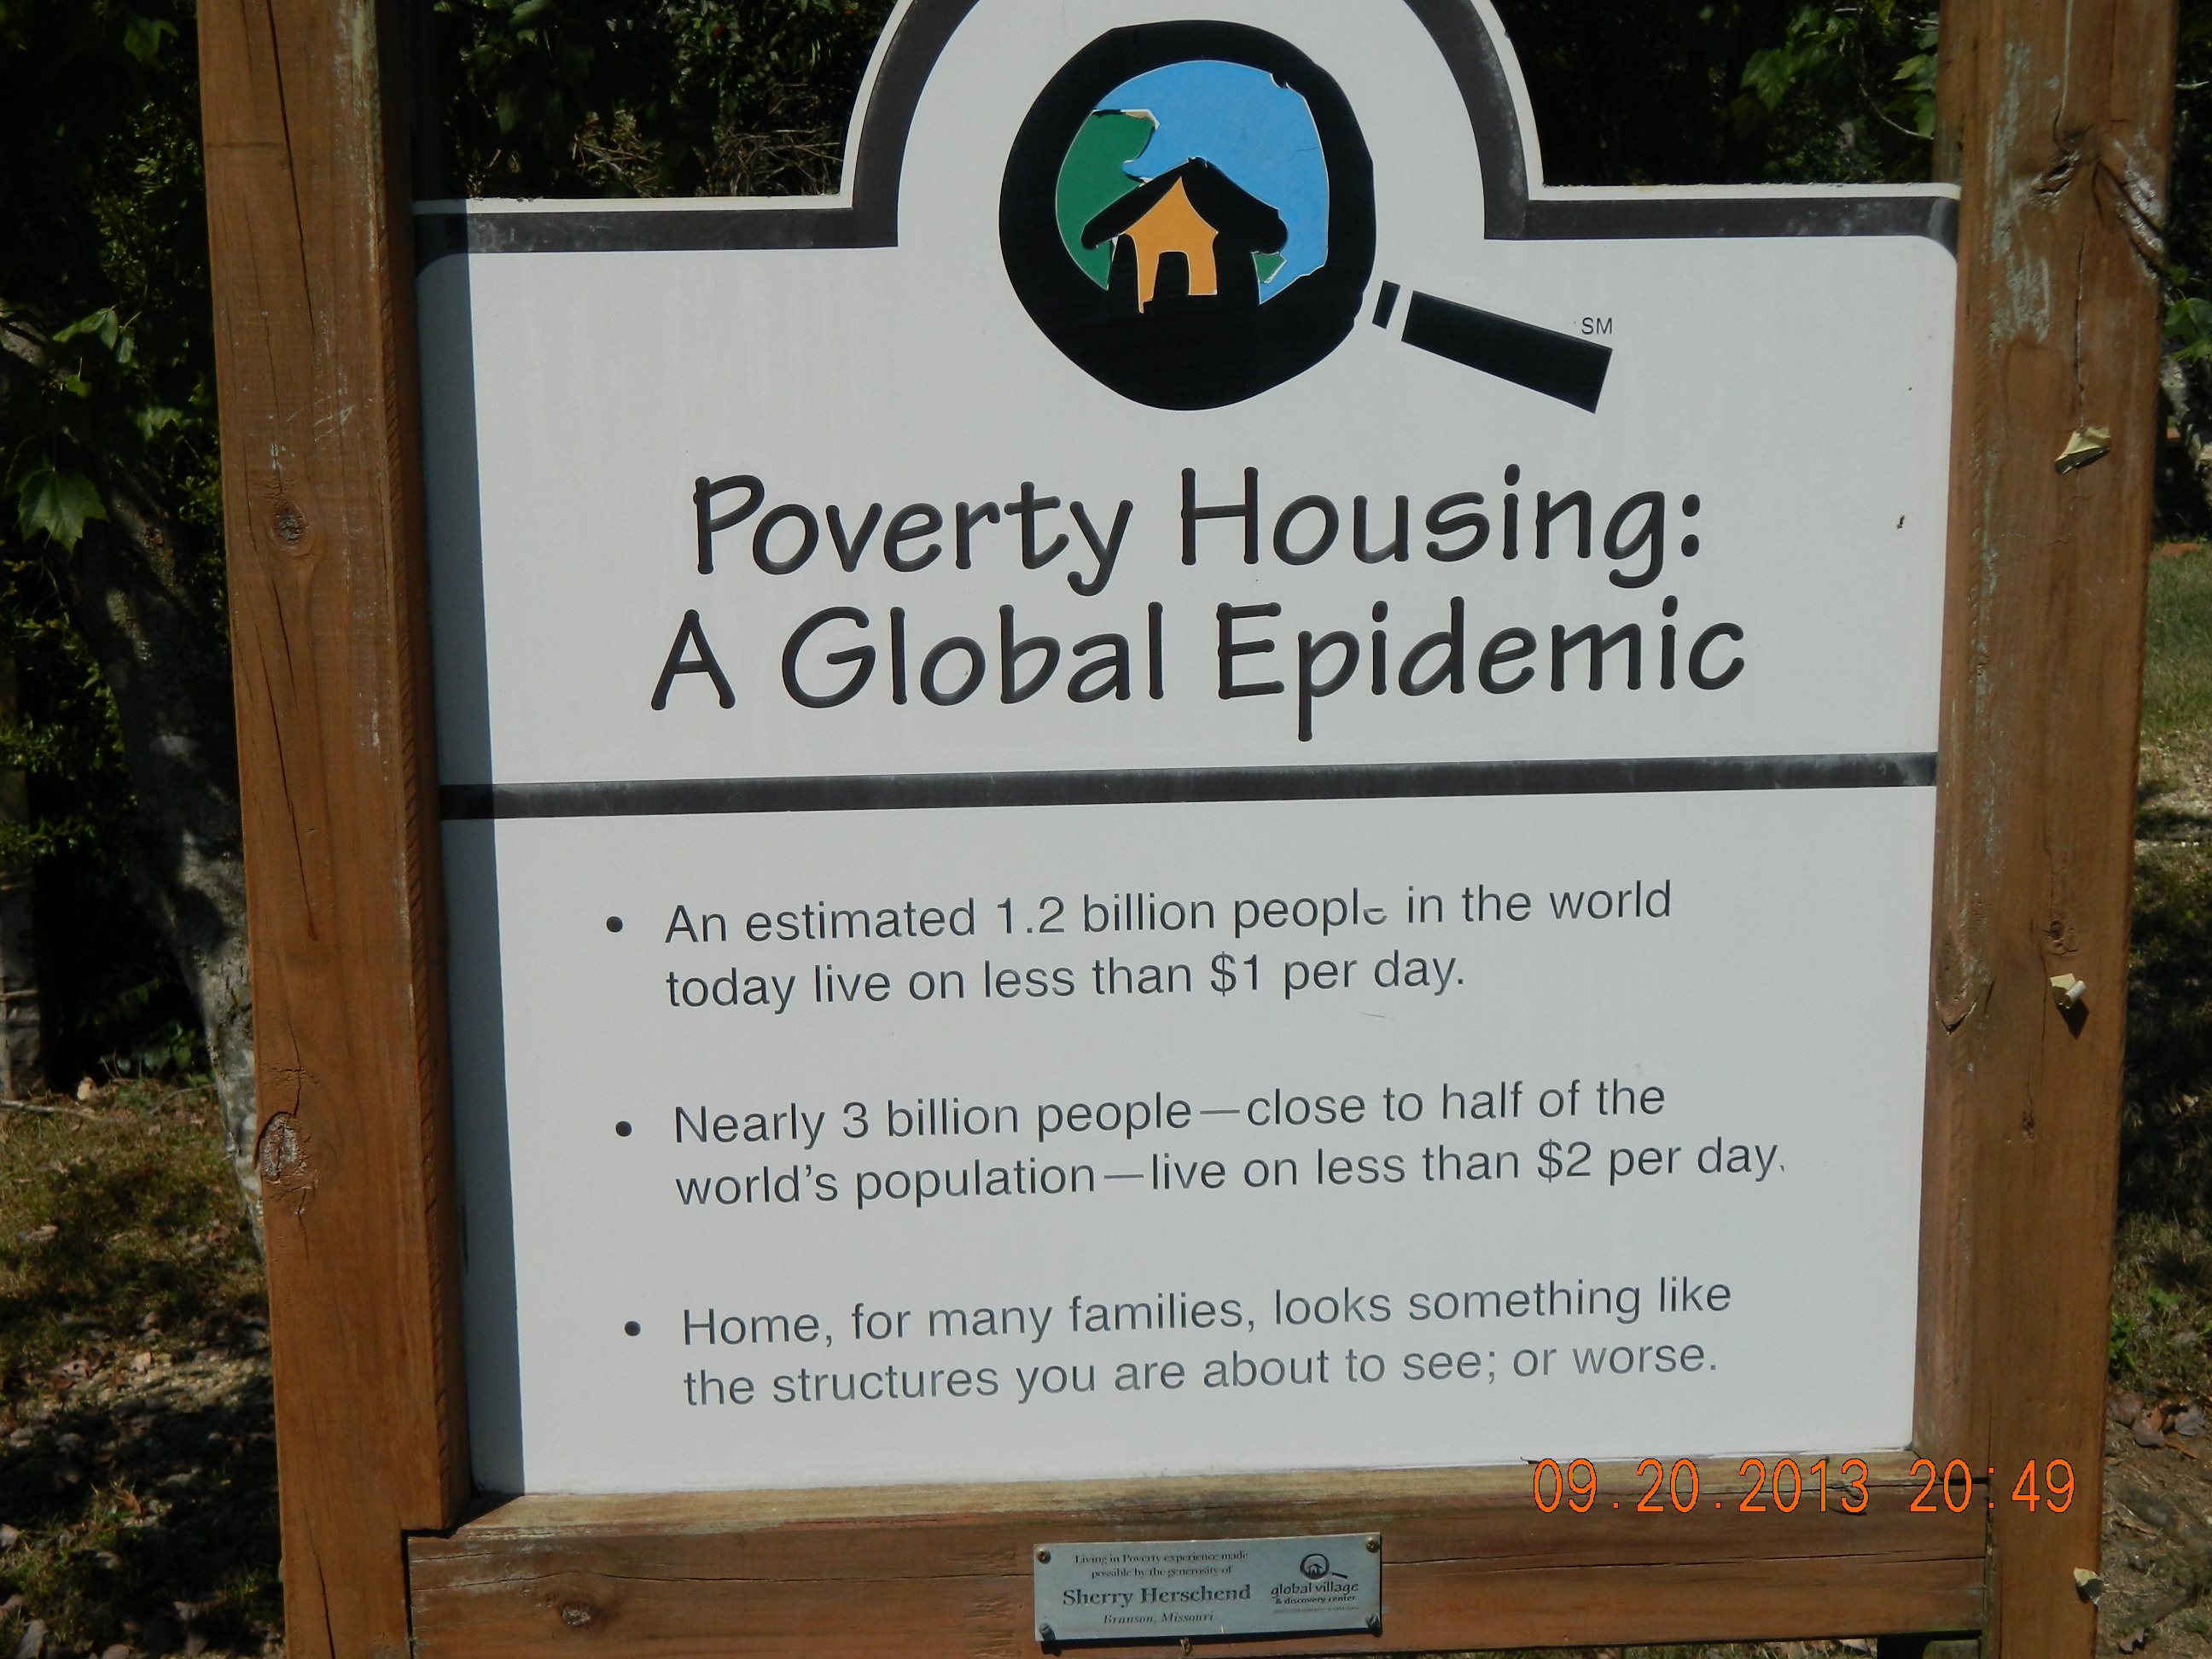 A GLOBAL EPIDEMIC - POVERTY HOUSING